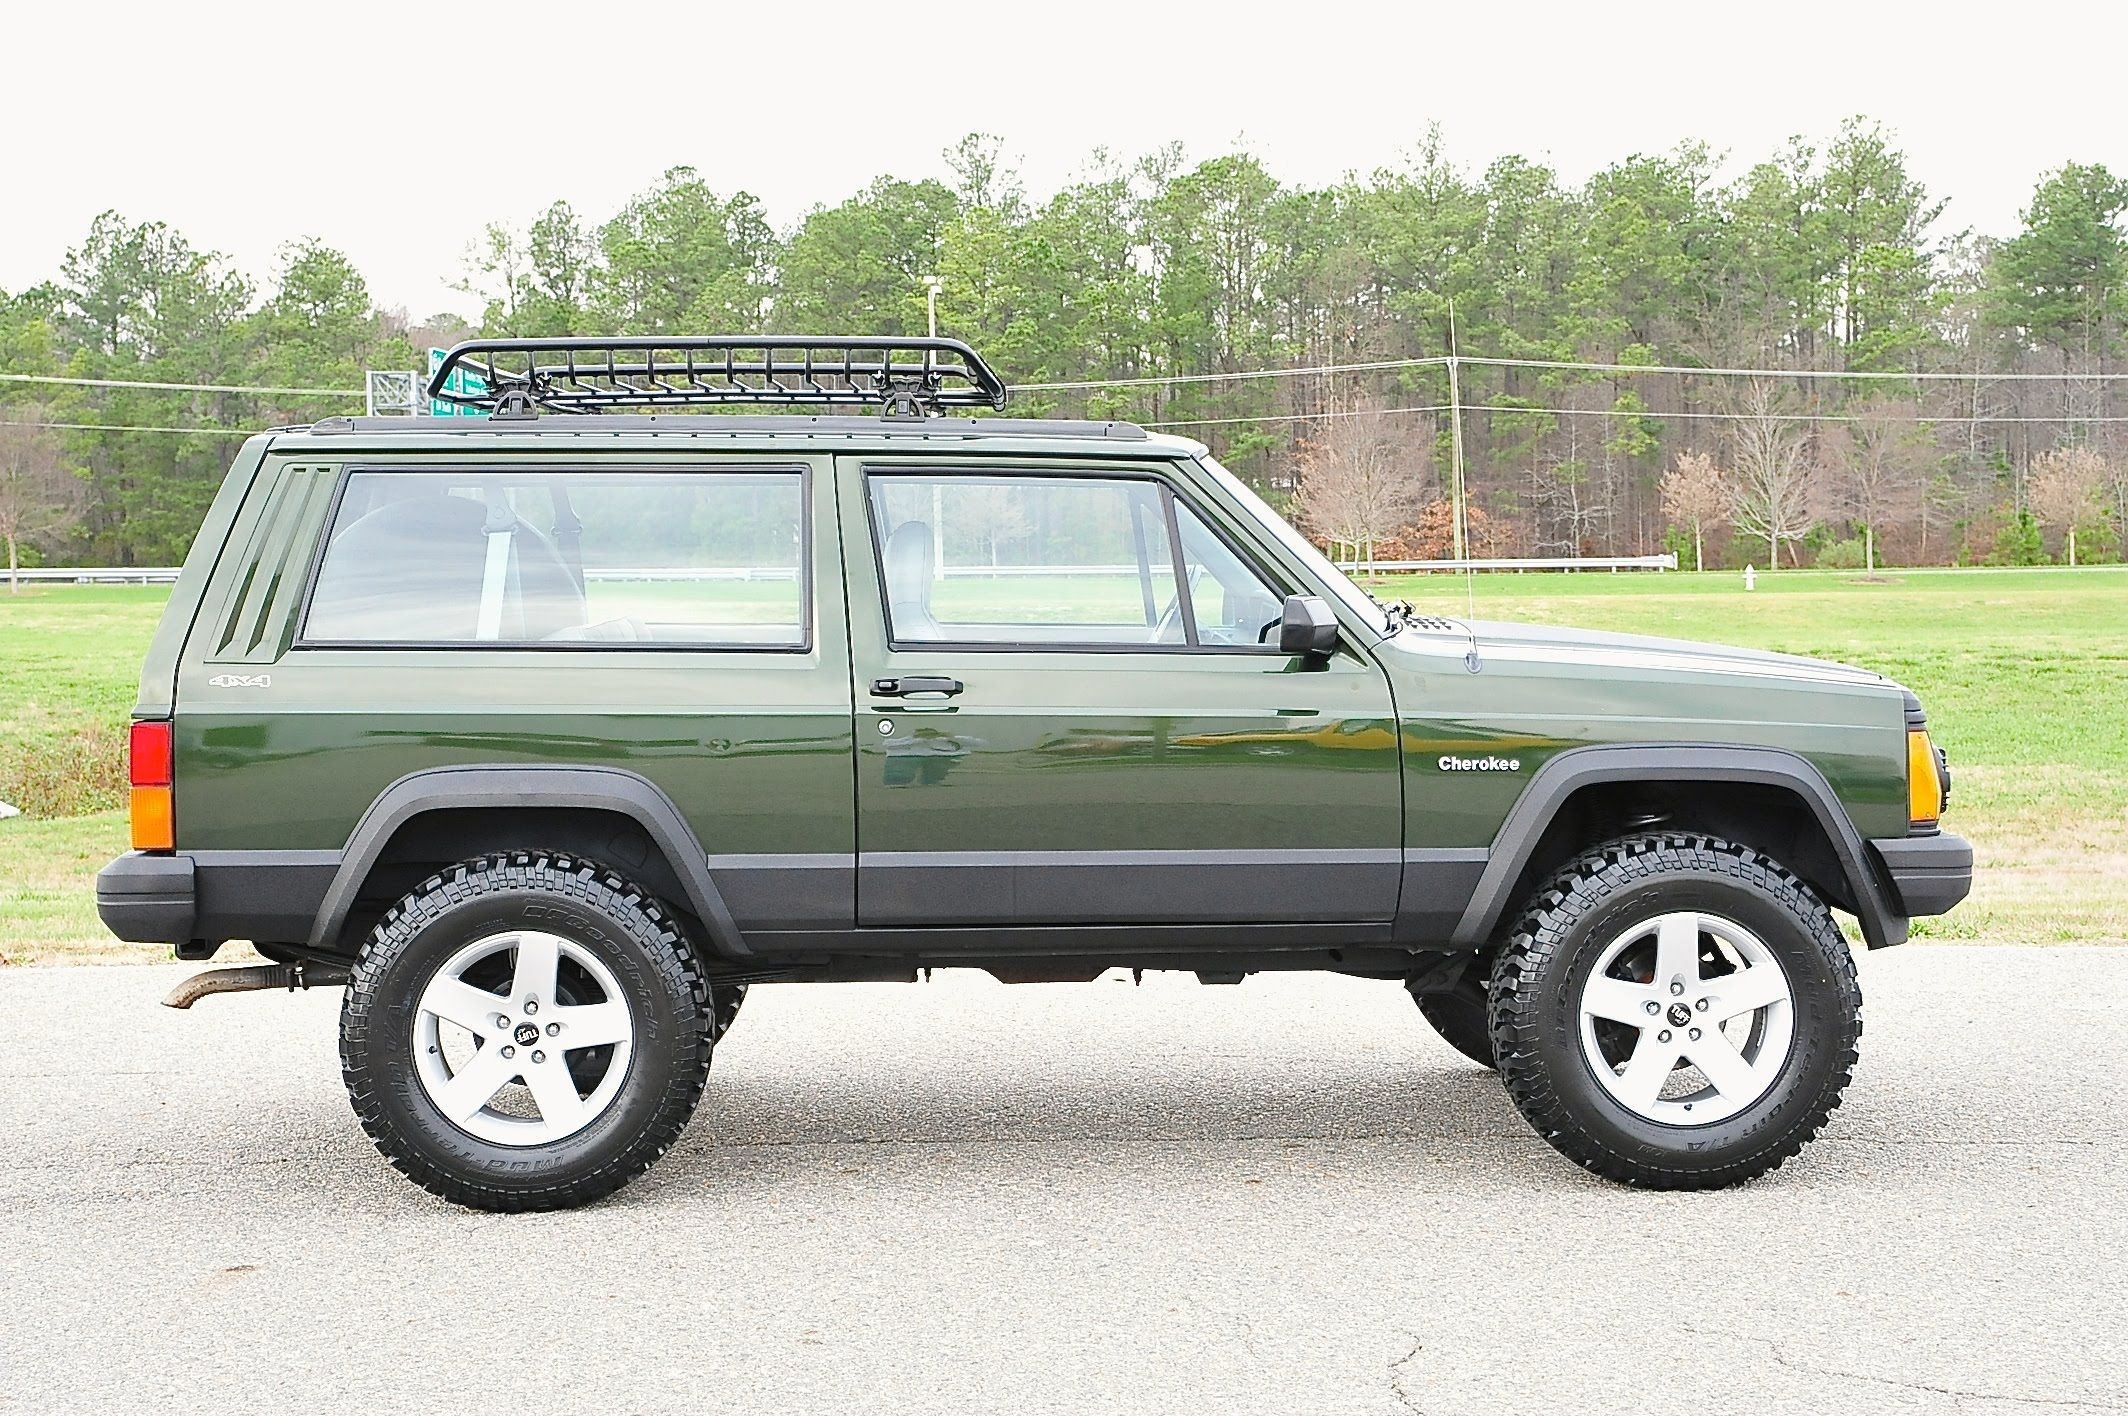 Awesome 2 Door Jeep Cherokee For Sale | Jeep Life | Pinterest ...